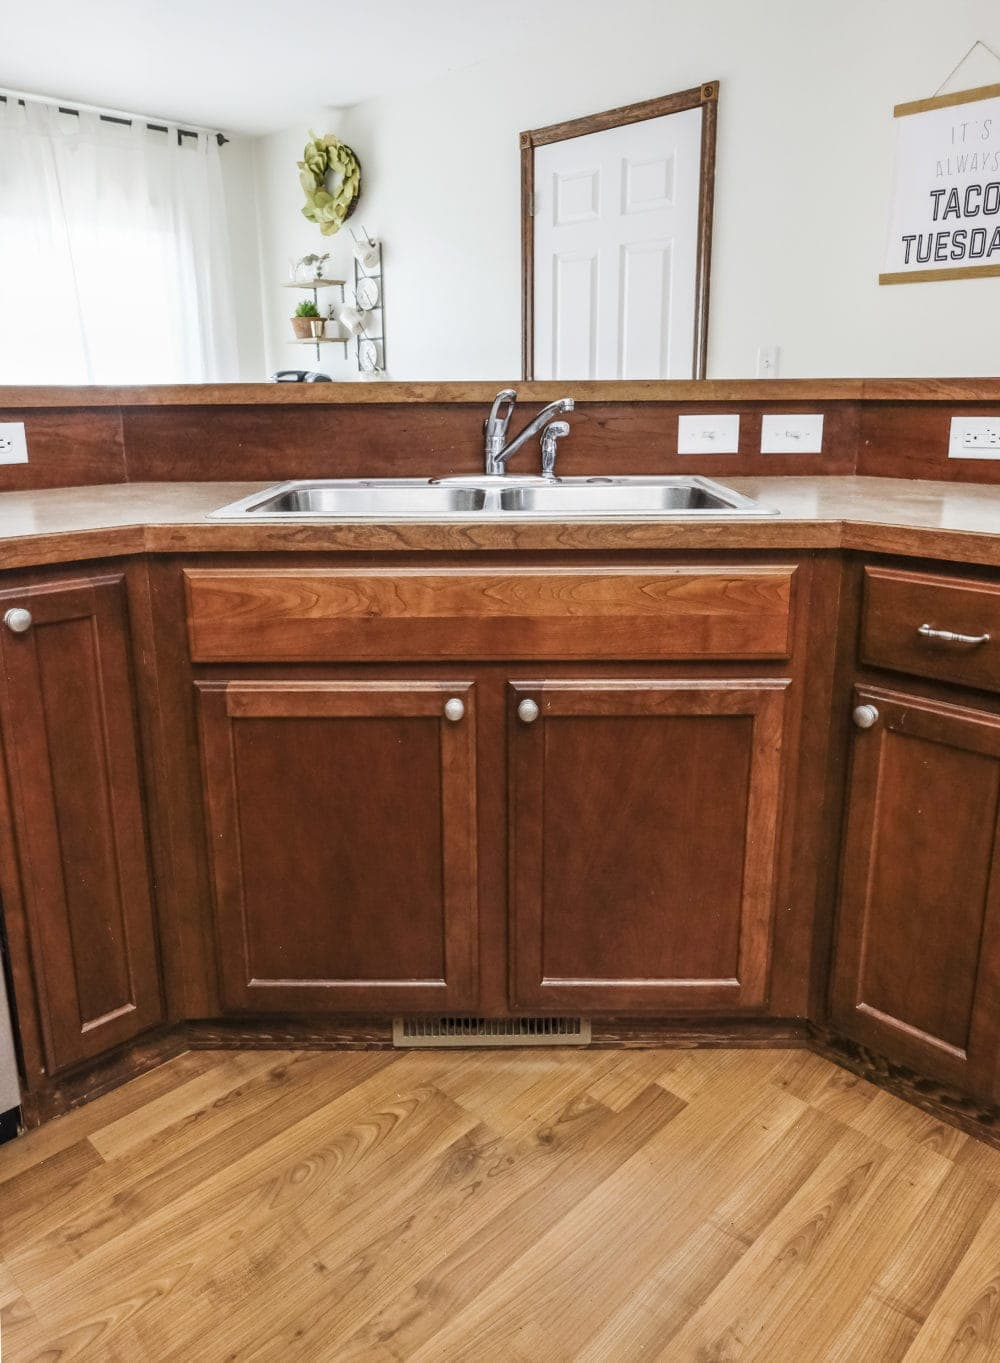 A stainless steel builder grade sink with dark wood cabinets